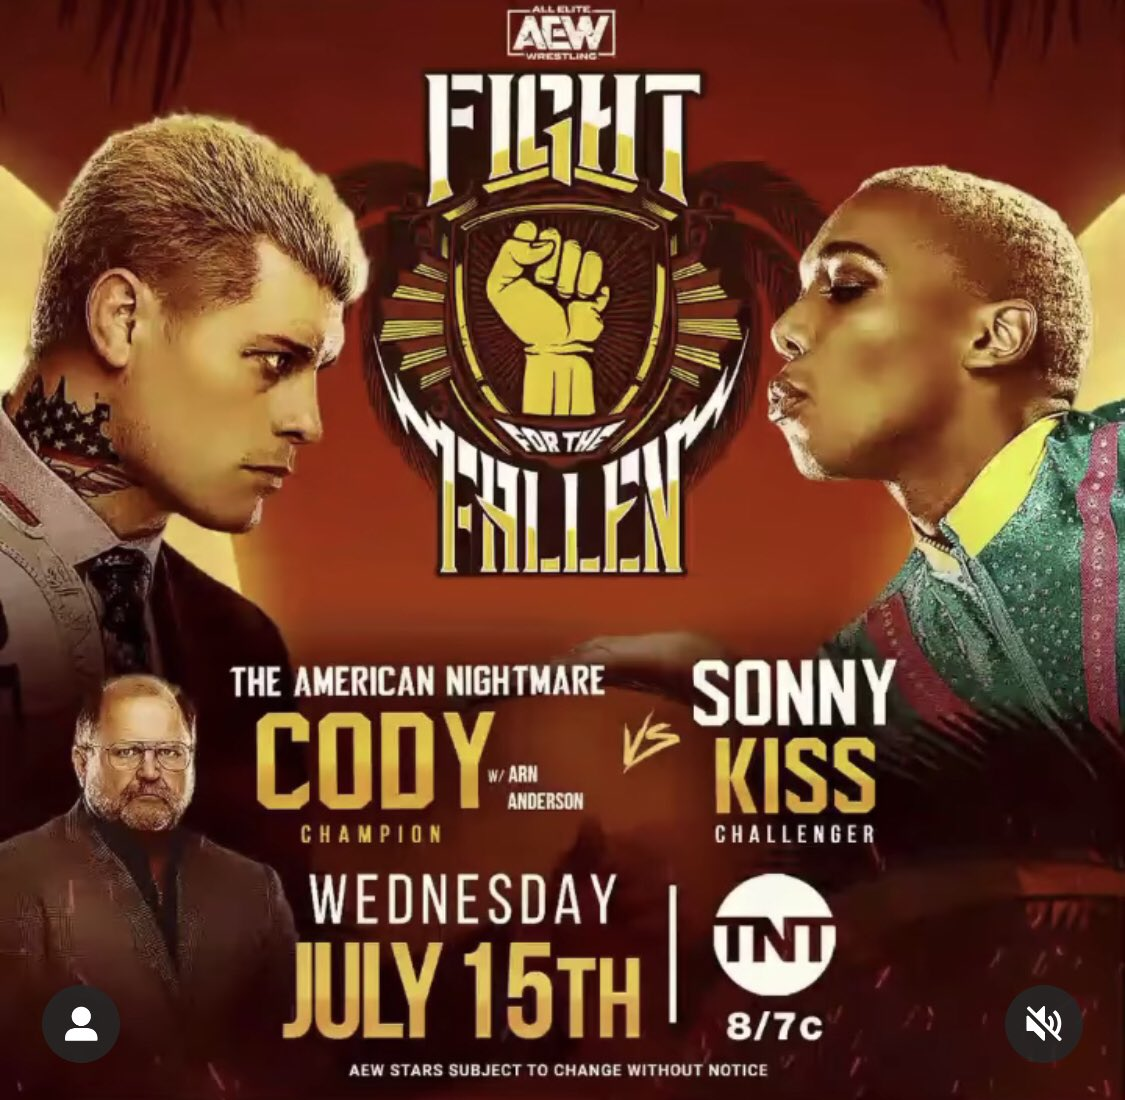 EXCUSE ME!!!! Episode with @sonnykissxo is available NOW! We focus on @sonnykissxo challenging @americannightmarecody for the @AEWrestling TNT CHAMPIONSHIP this Wed, July 15th, 8:00pm est!!